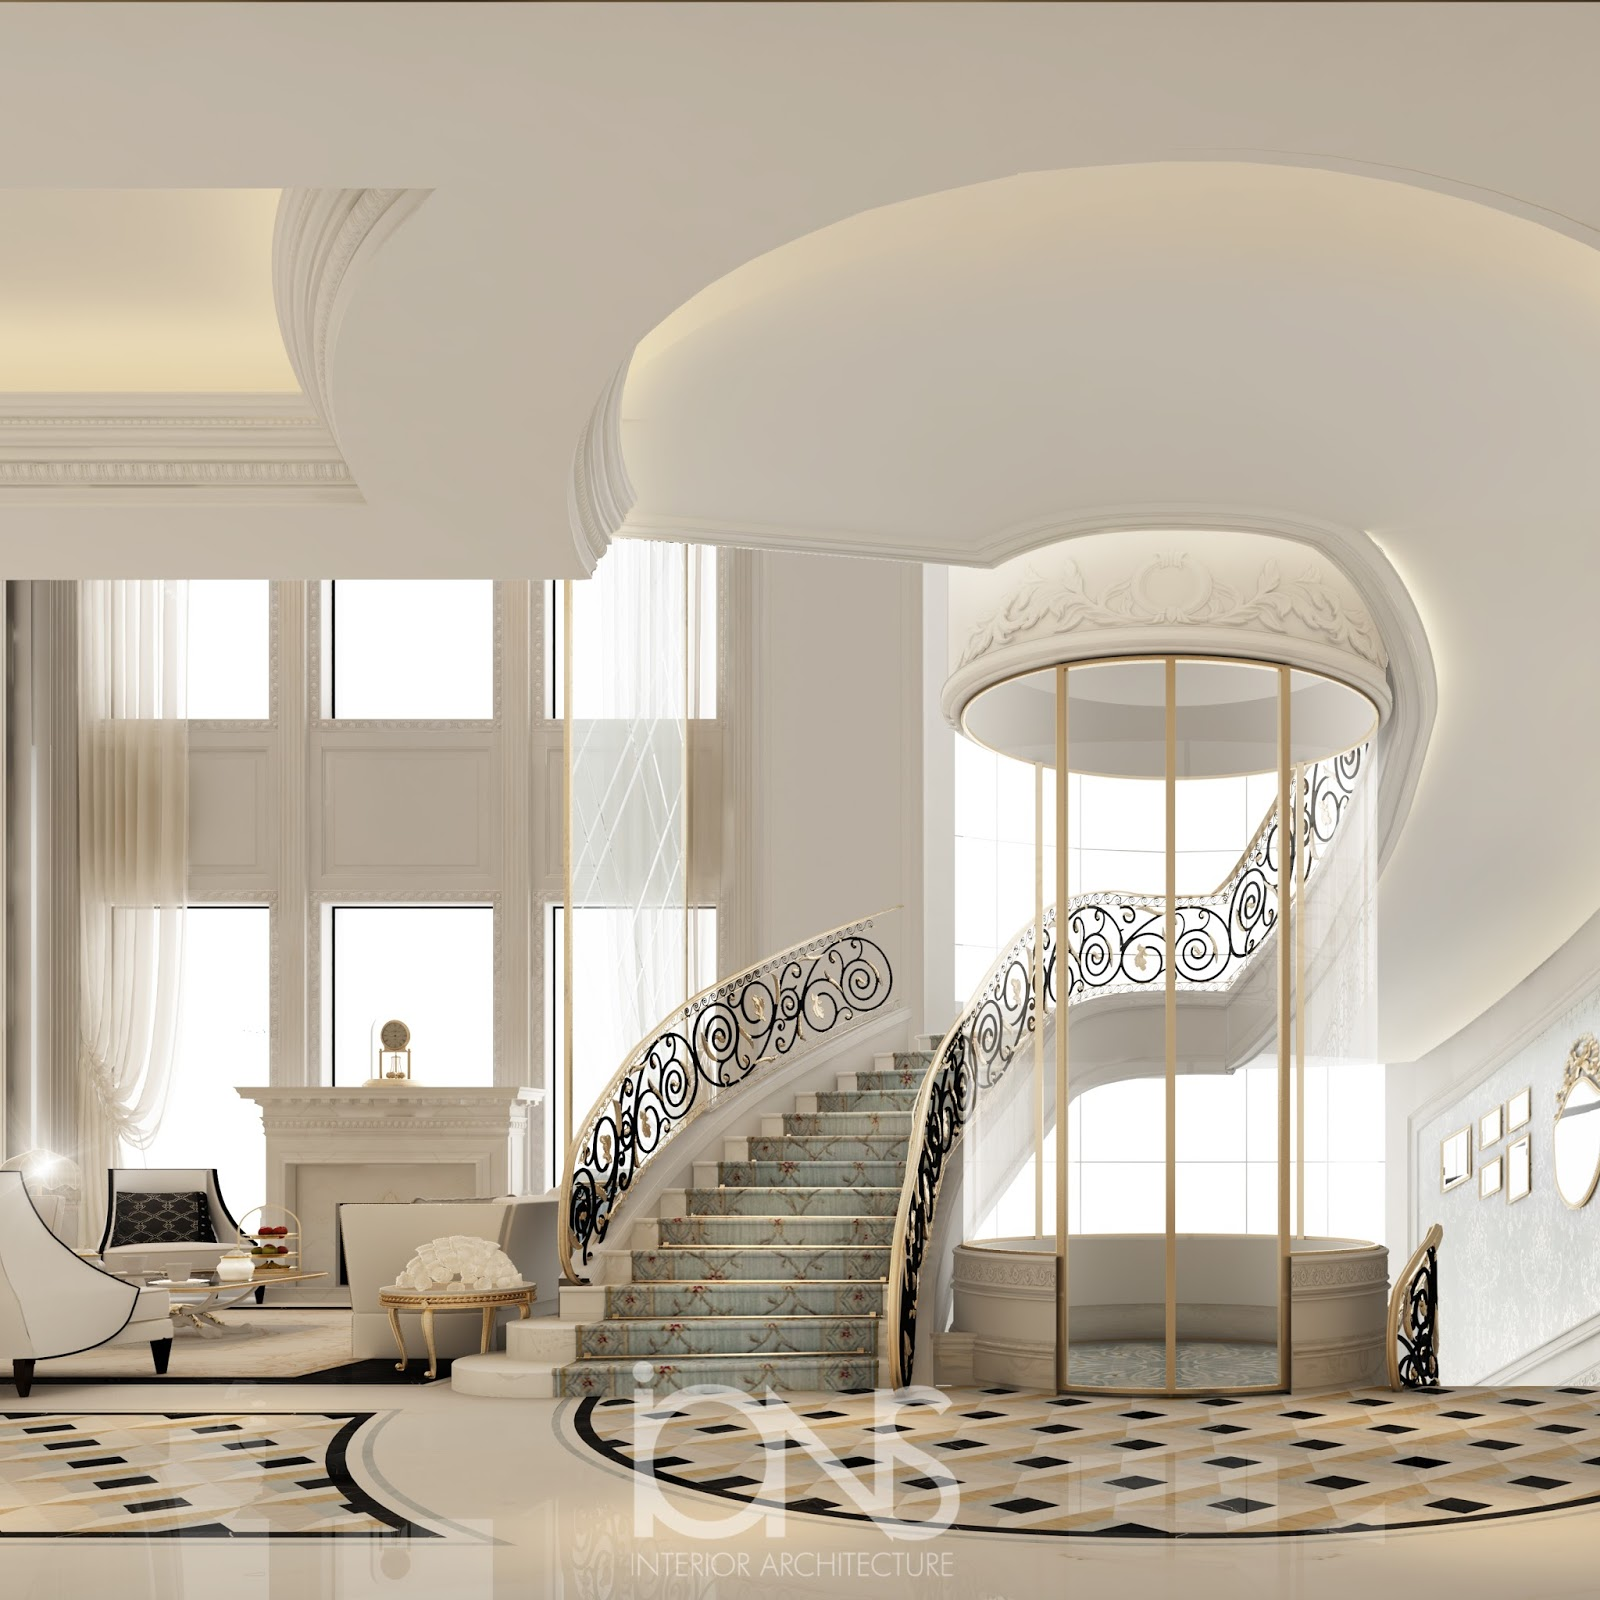 Dubai Interior Design Company Interior Design Ideas For Luxury House